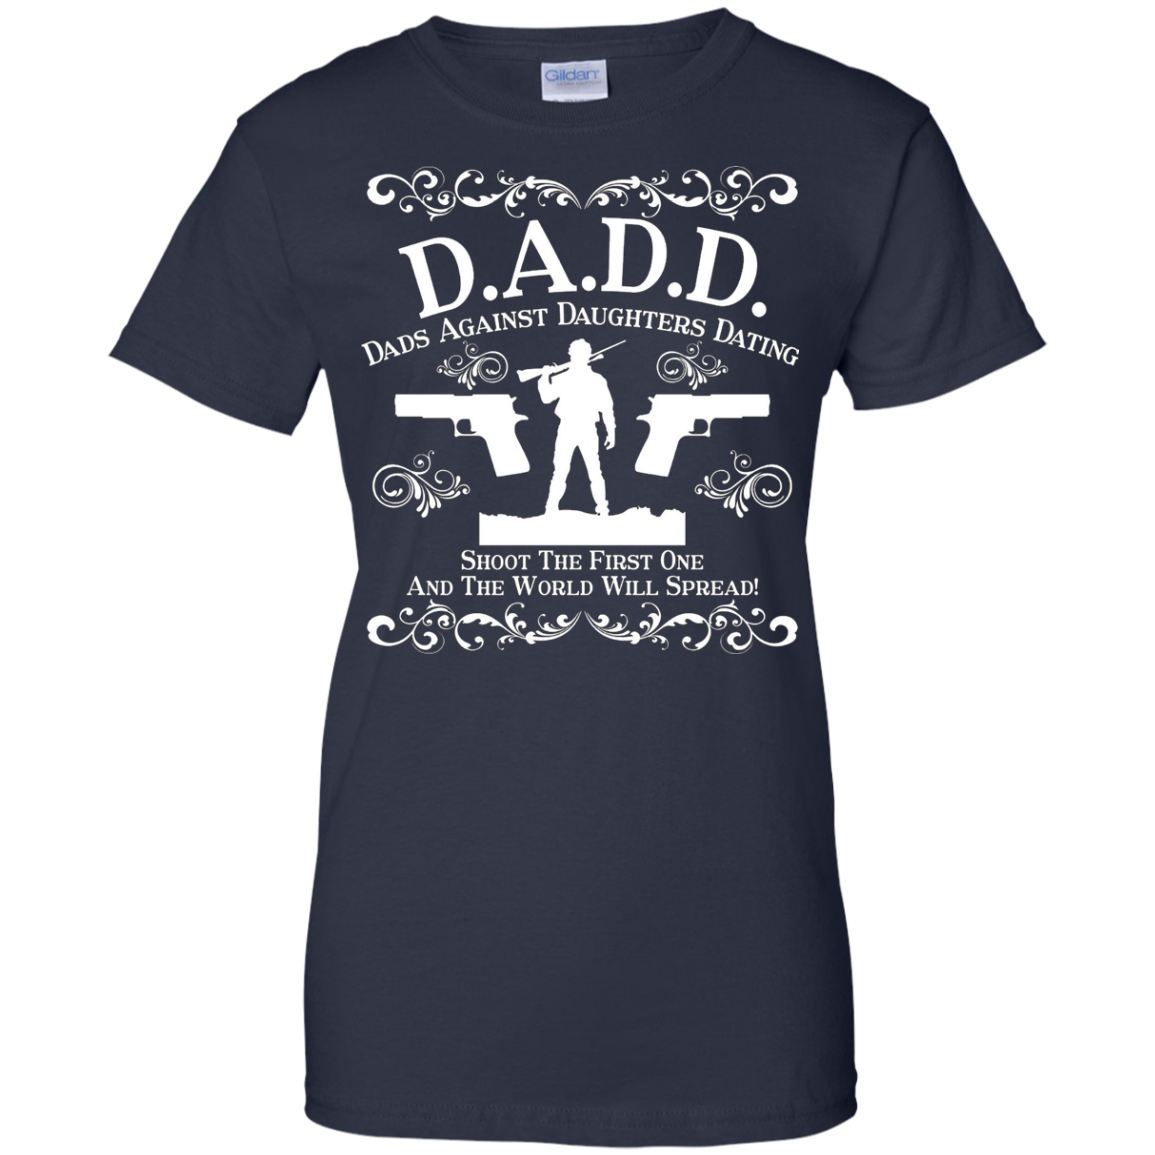 Dad T-shirt , D.A.D.D Dads against Daughters Dating Shoot th